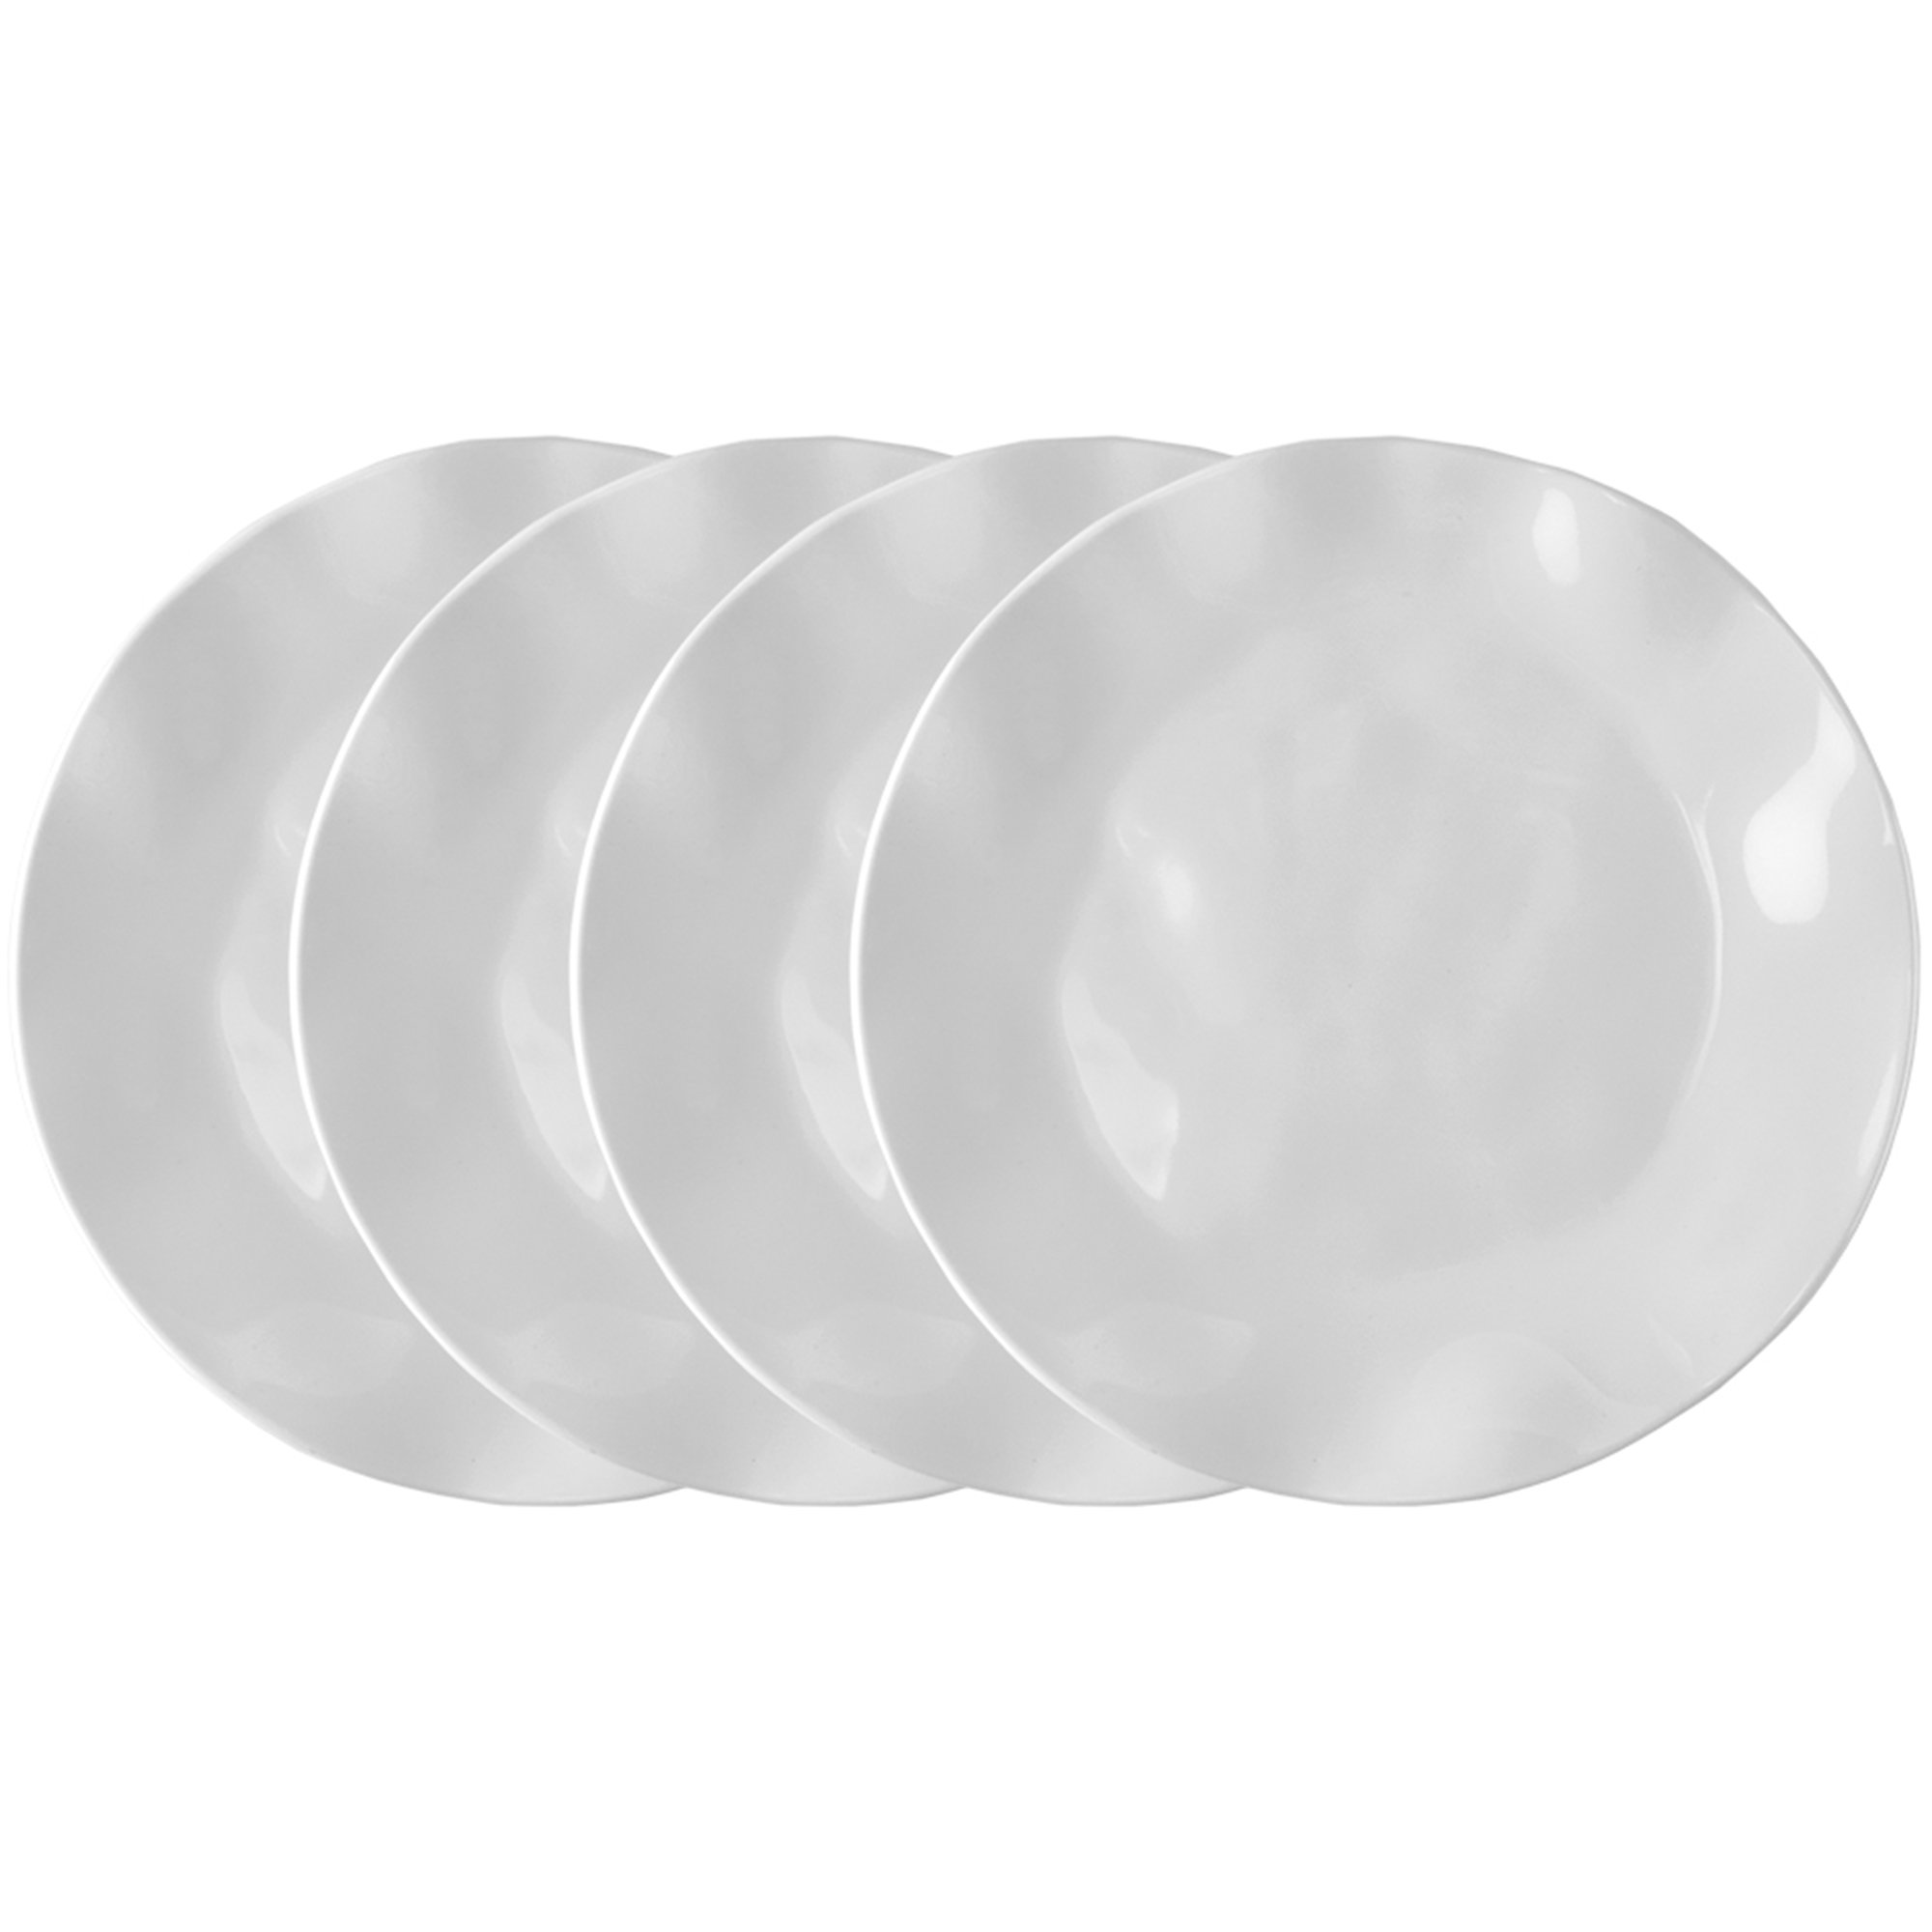 Q Squared Ruffle in Round BPA-Free Melamine Round Dinner Plate, 10-1/2 Inches, Set of 4, White